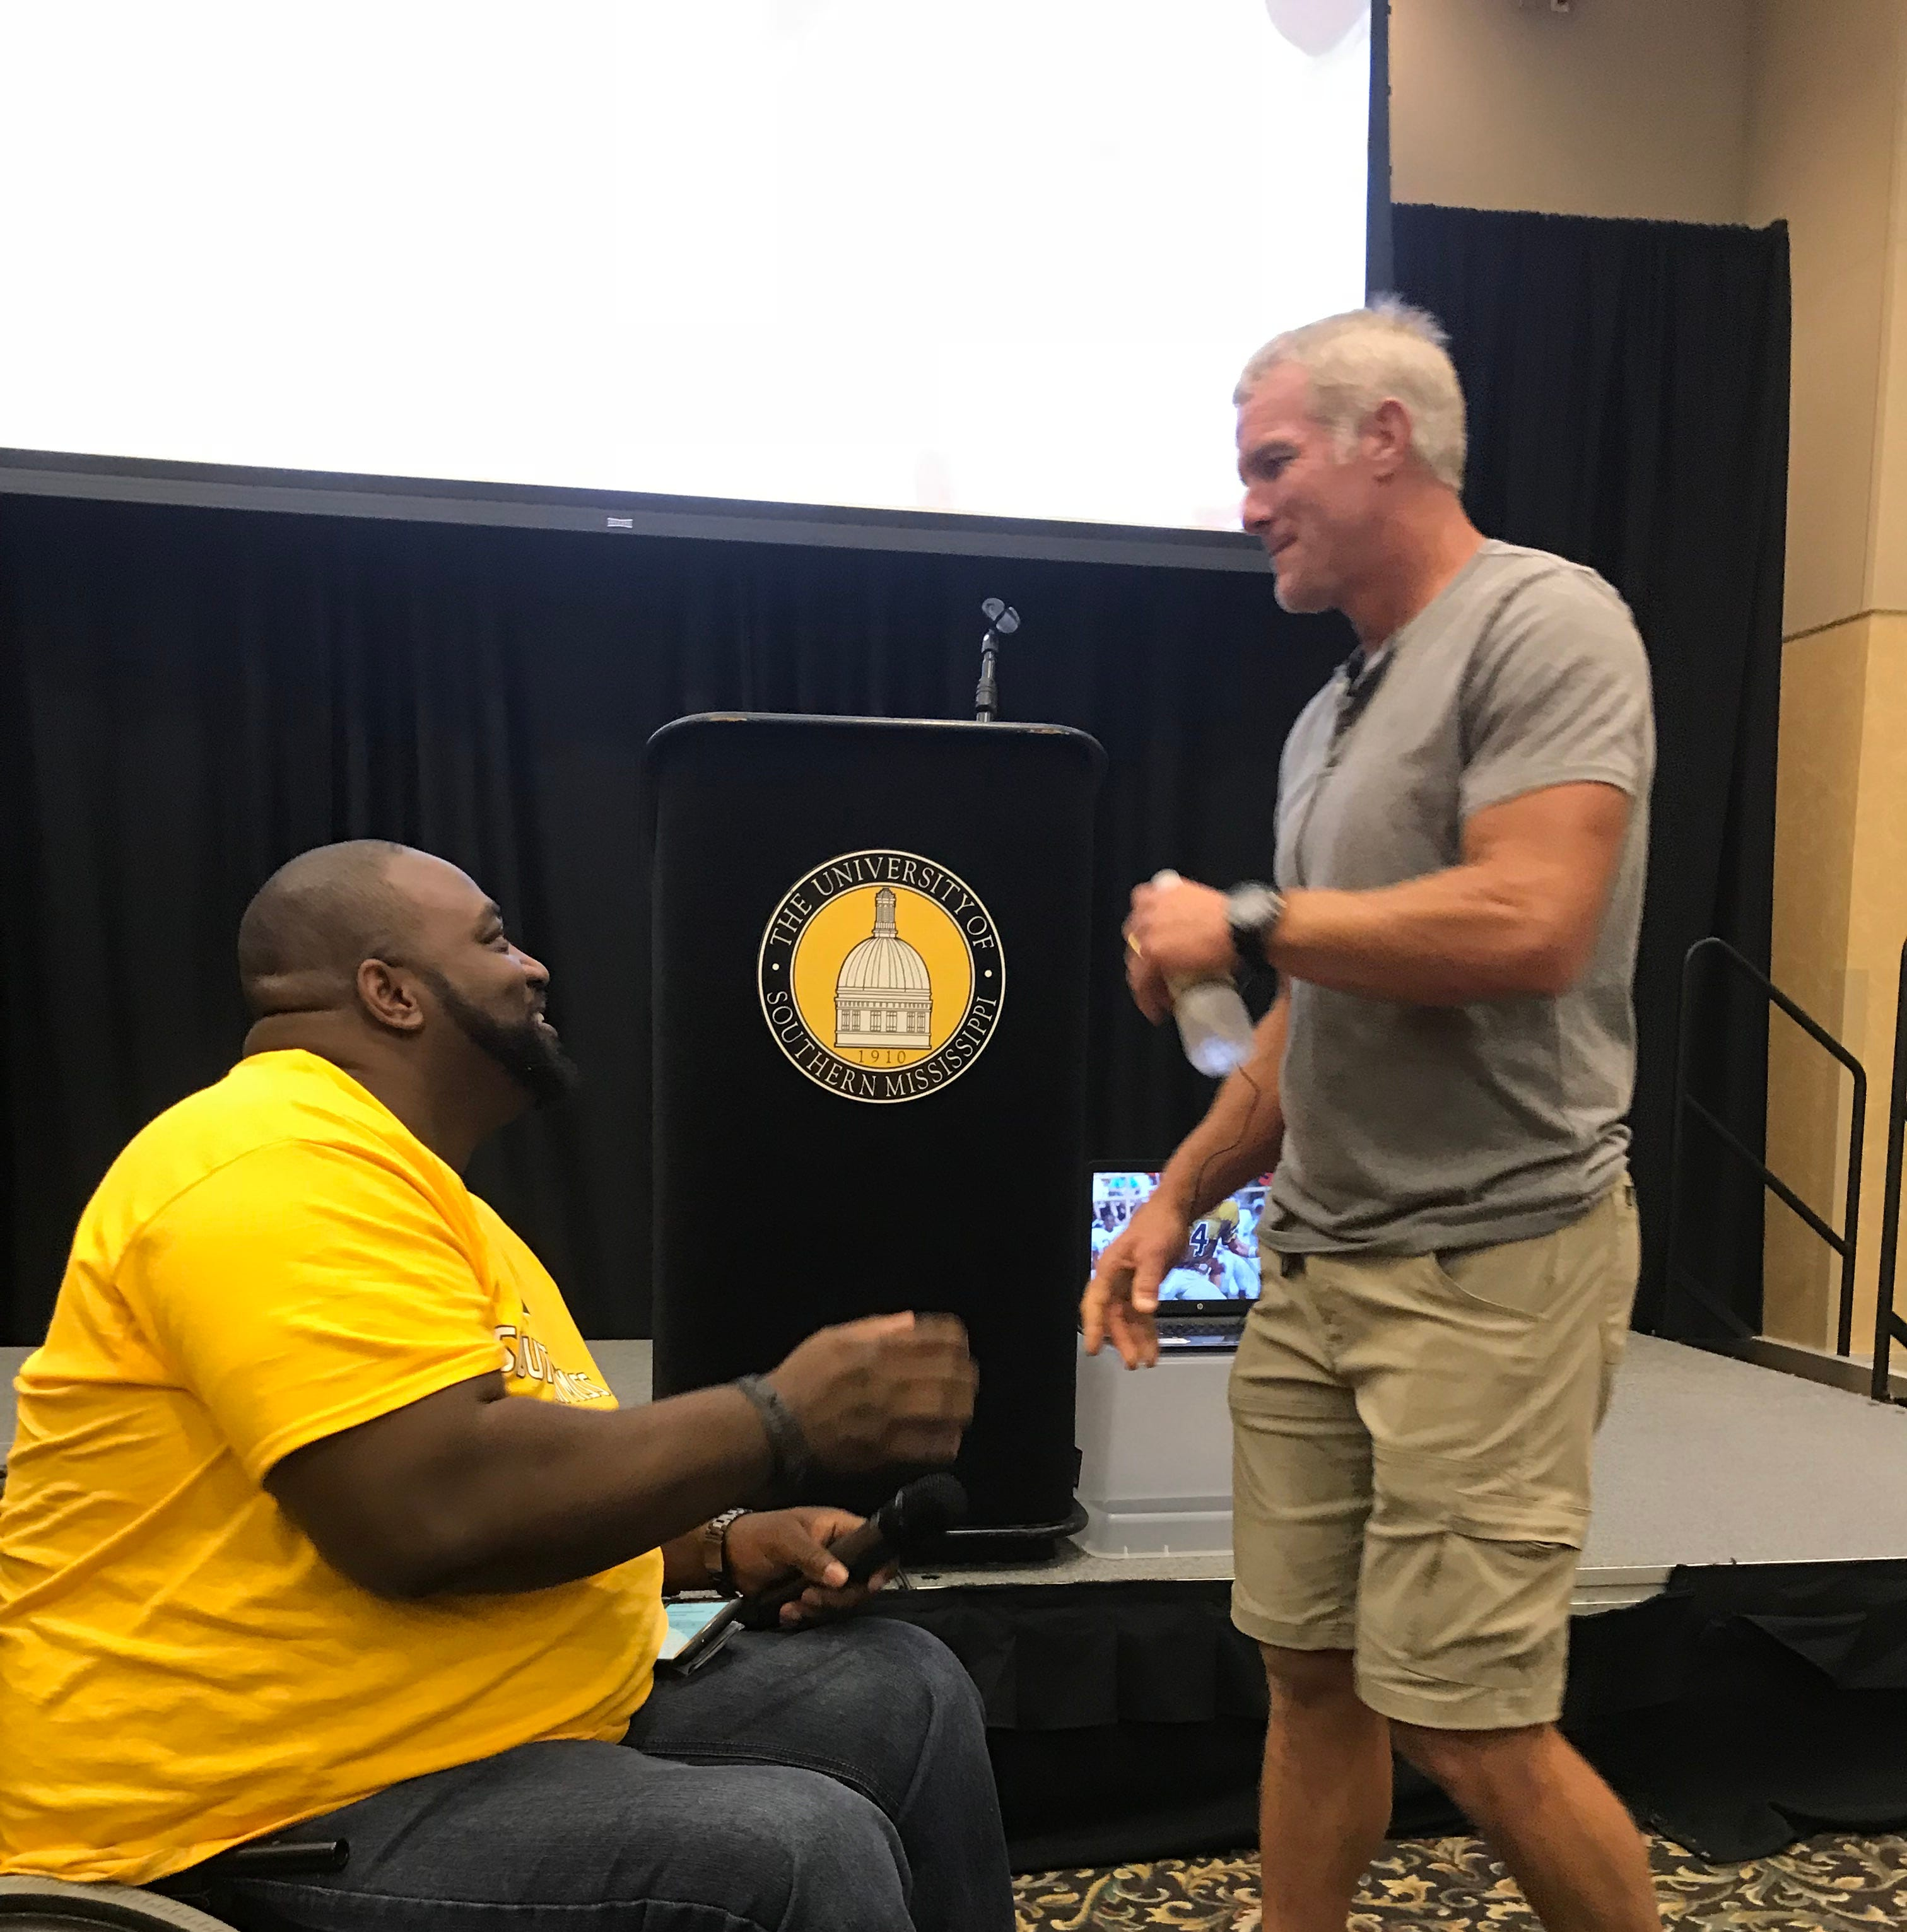 NFL legend Brett Favre tells students with disabilities: 'Underdogs win'